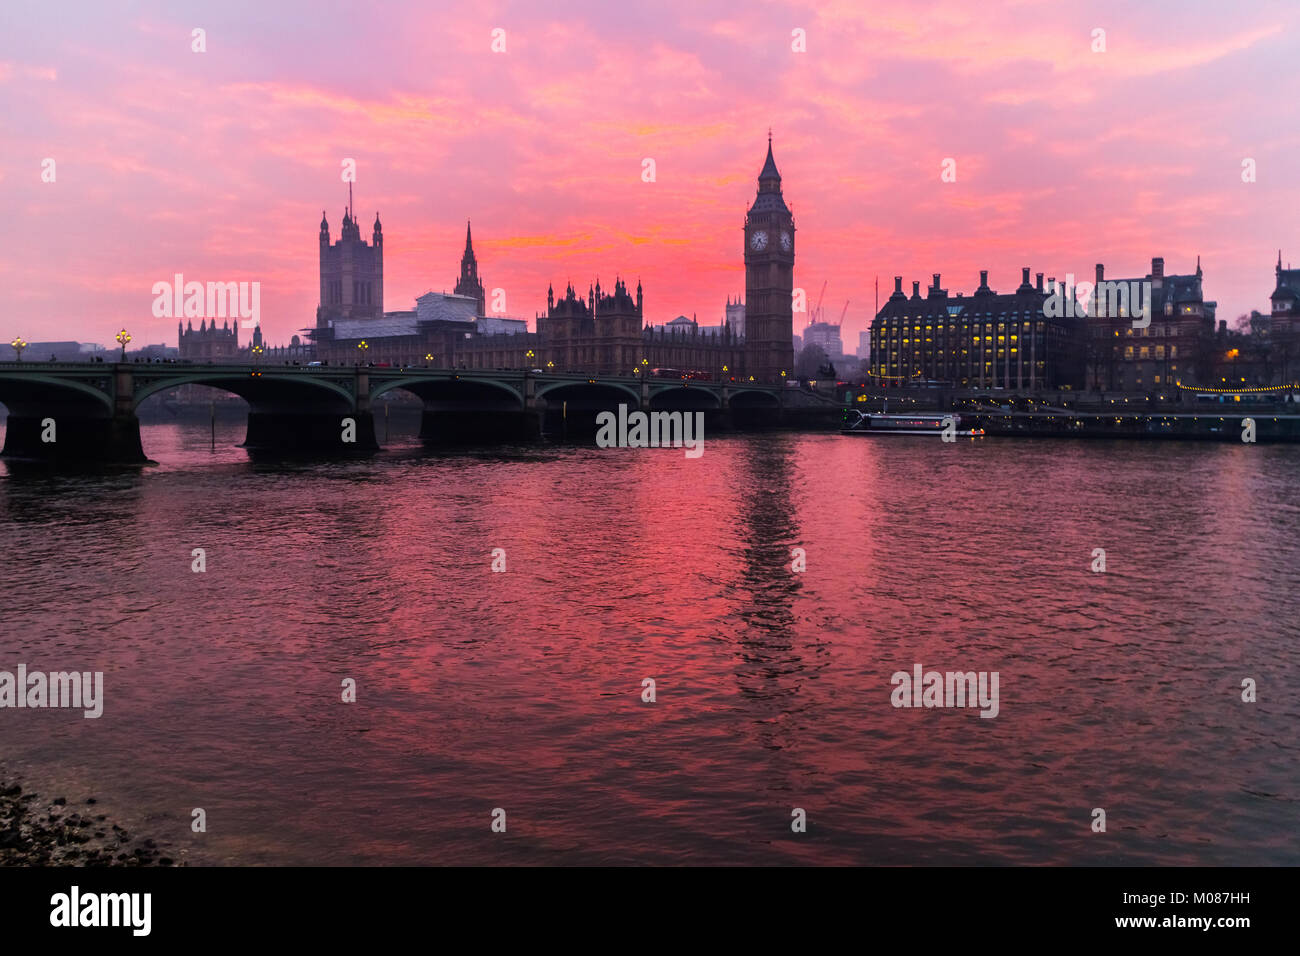 Houses of Parliament, Big Ben - Stock Image